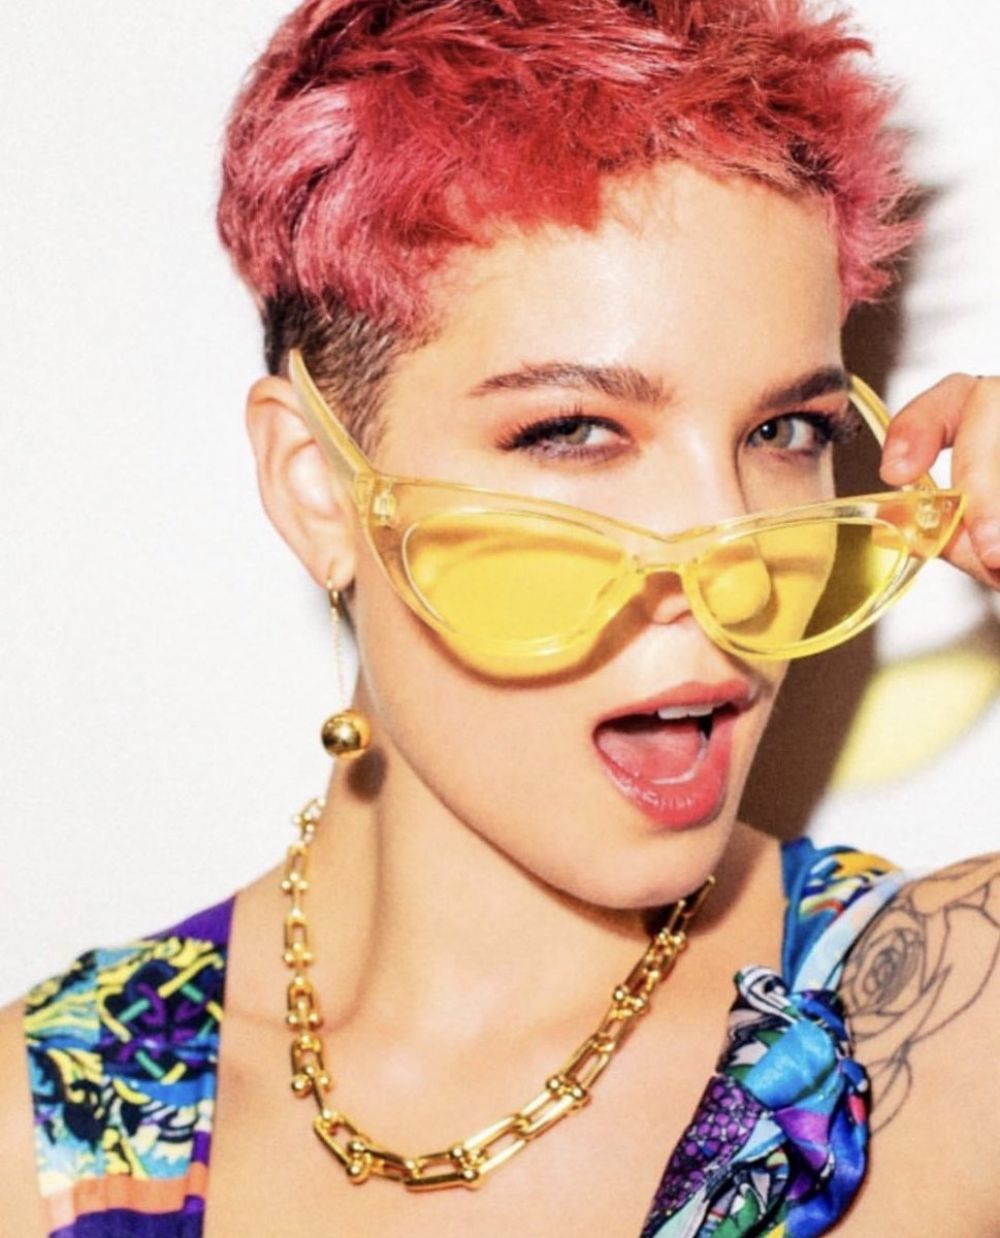 Halsey for GQ Magazine, Japan 2019